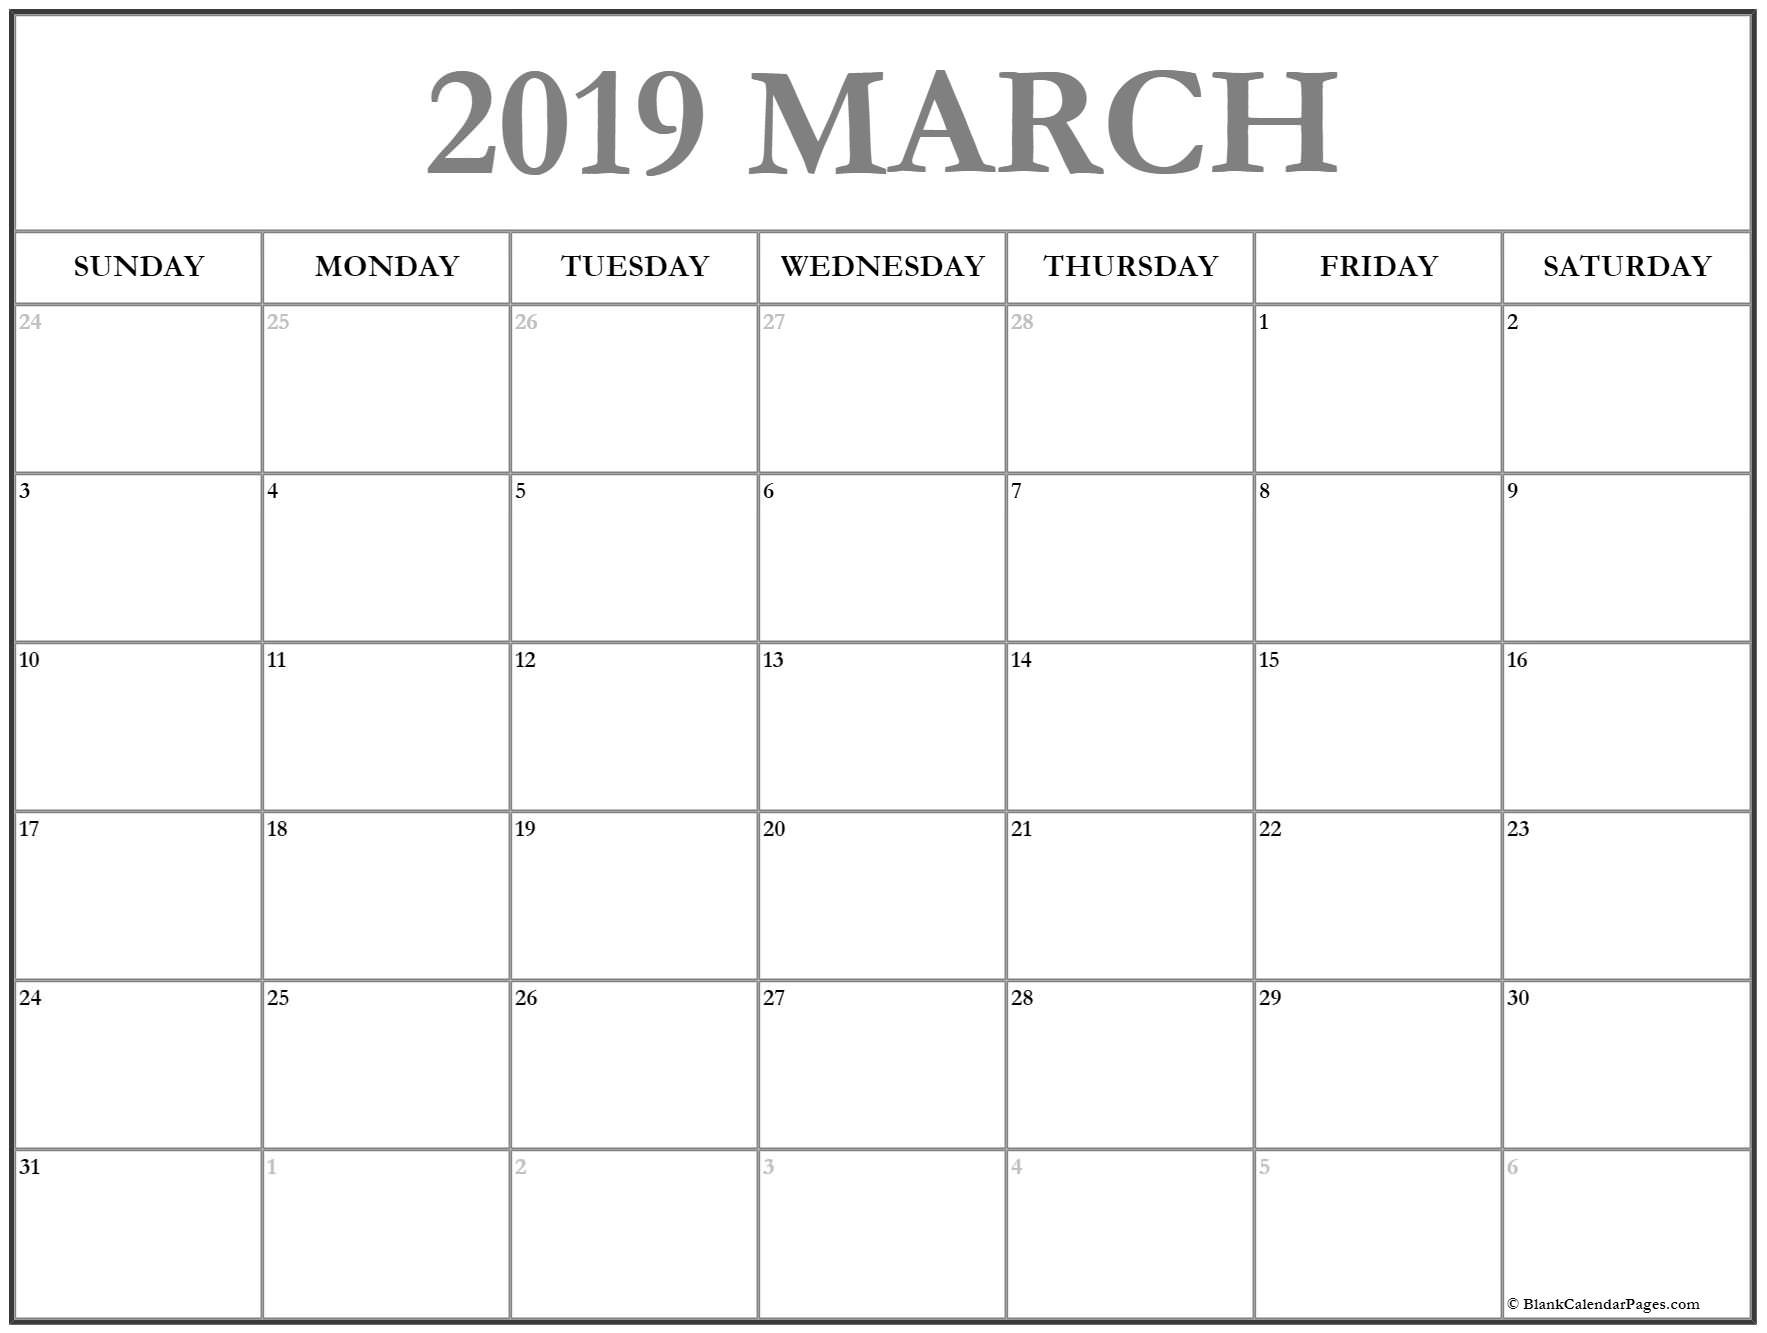 March Holiday Calendar 2019 Mejores Y Más Novedosos March 2019 Calendar Of March Holiday Calendar 2019 Mejores Y Más Novedosos March 2019 Calendar Printable with Holidays